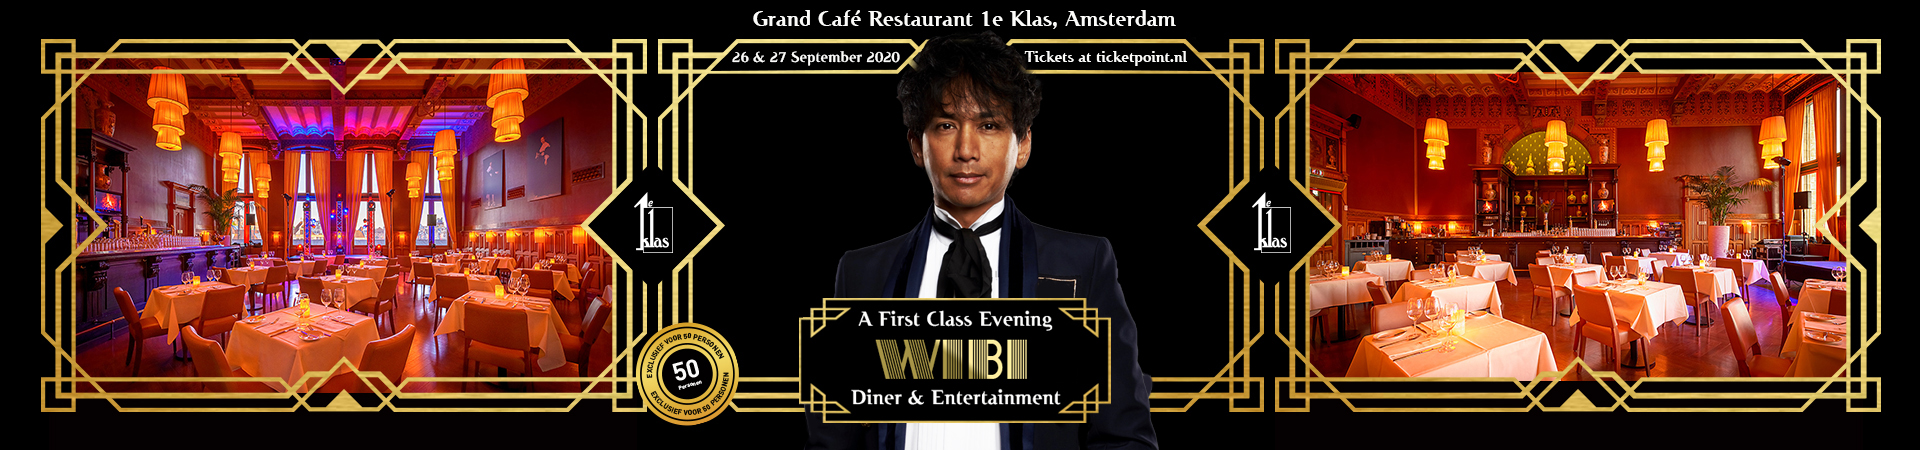 First Class Evening Wibi Soerjadi sept 2020